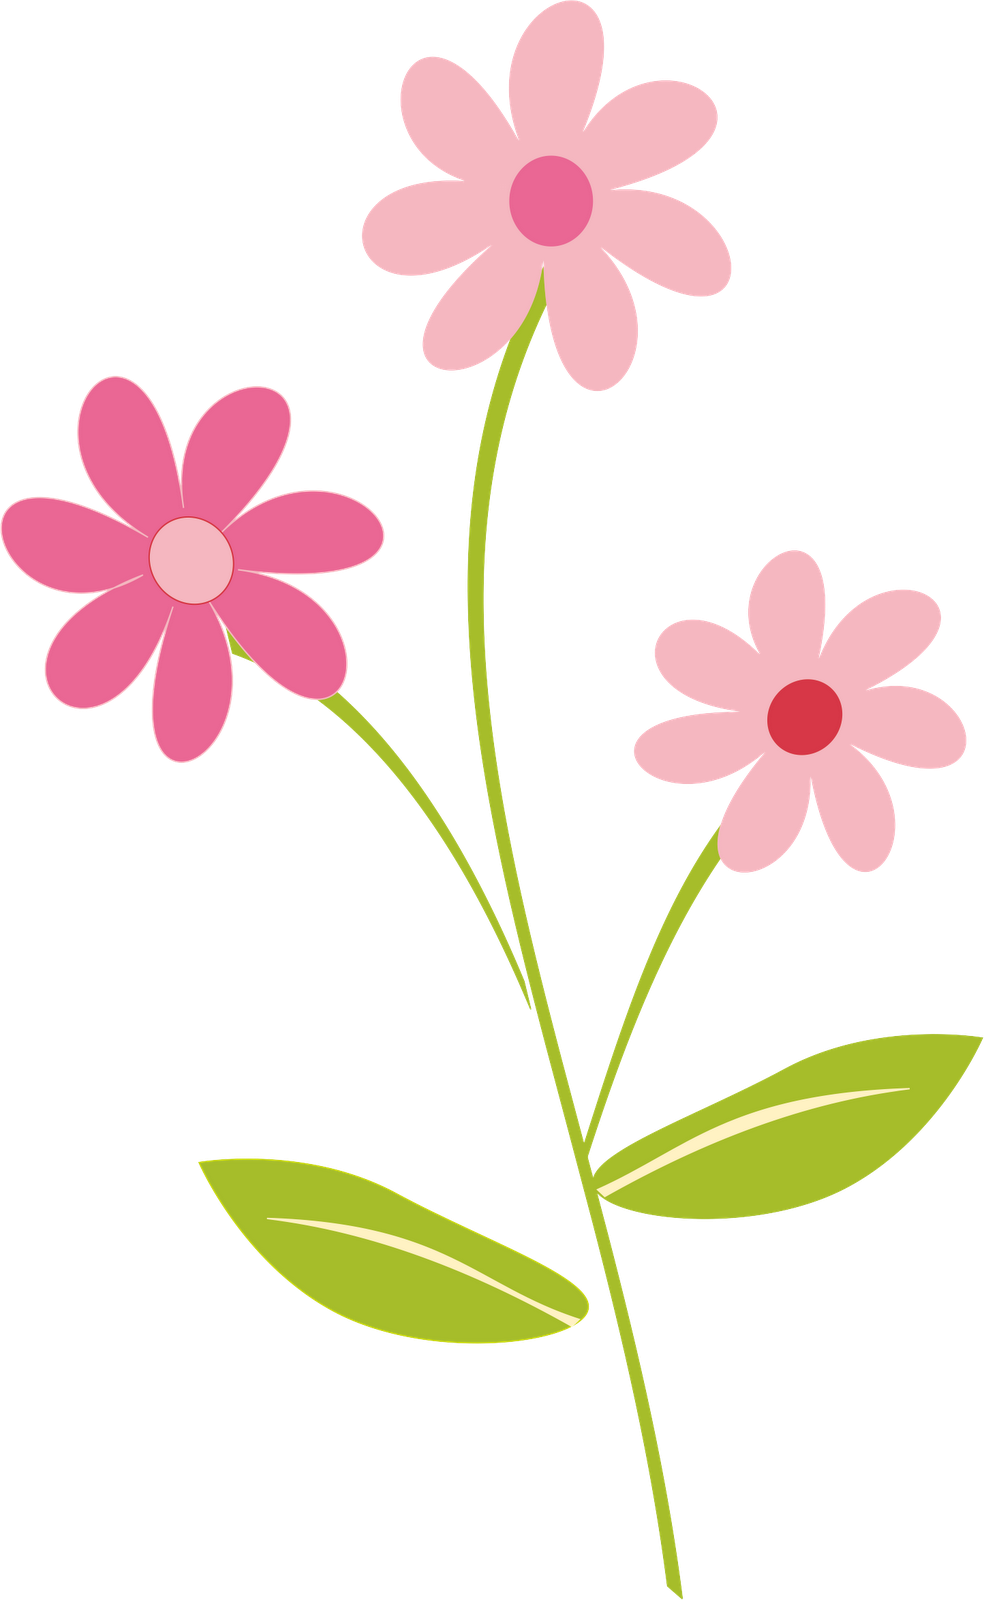 Cute spring flower - Photos For Flowers Border Clipart Png On Explore Our Collection Of Flowers Border Clipart Png By You Know And Love